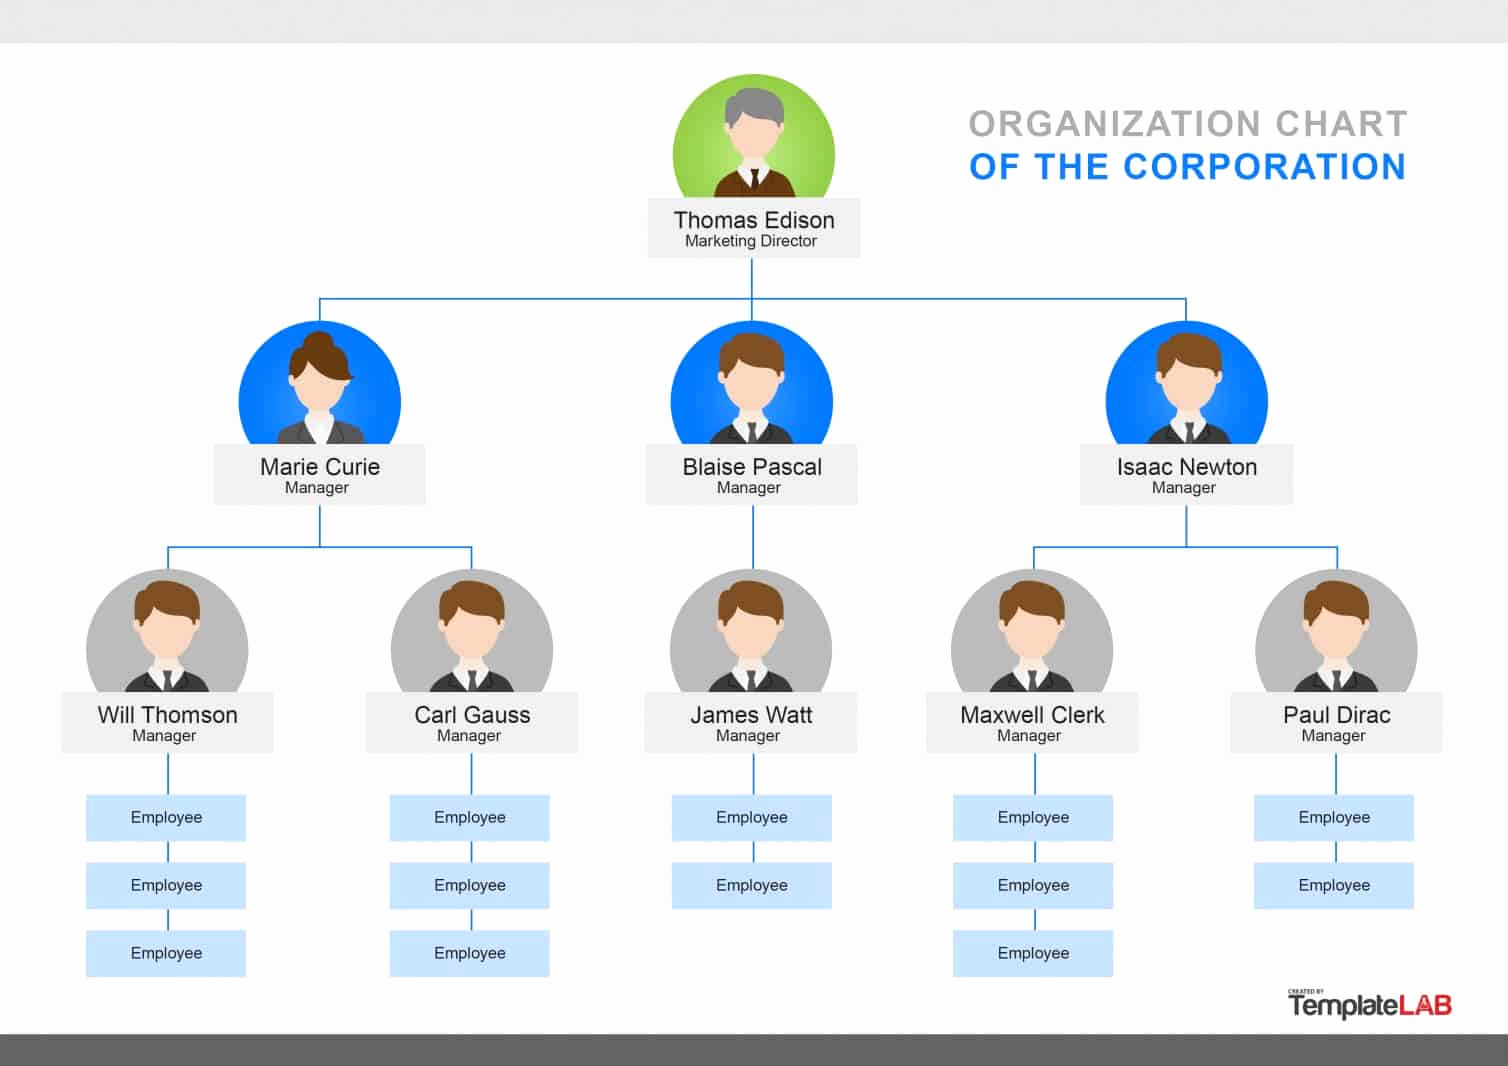 Organization Chart Template Excel Awesome 40 organizational Chart Templates Word Excel Powerpoint